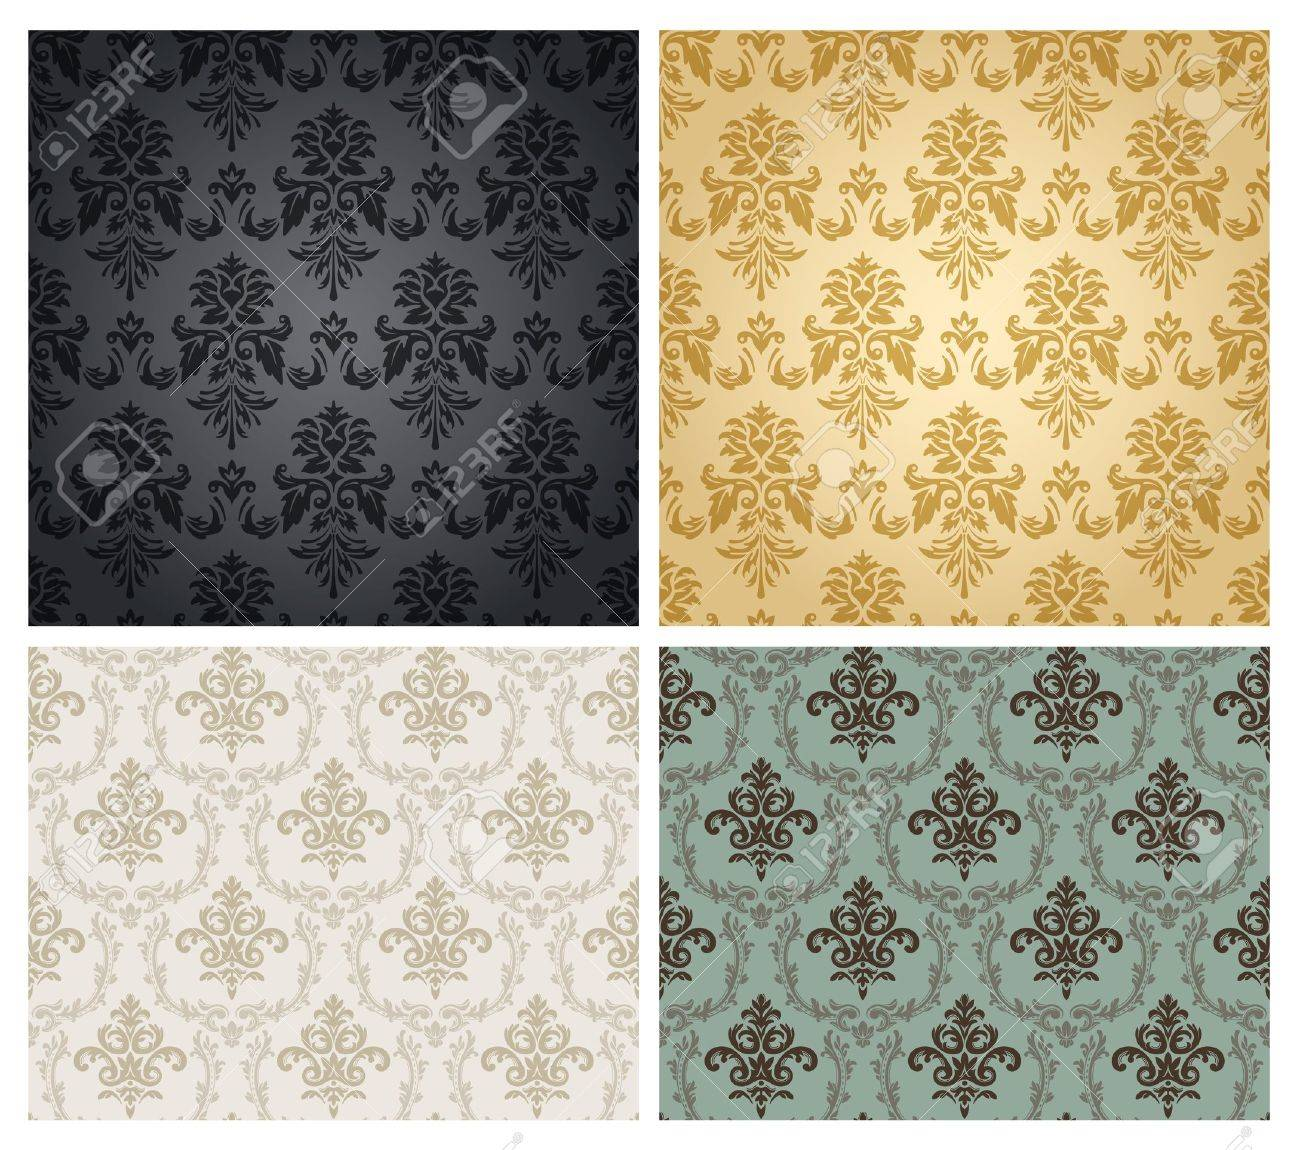 Seamless damask wallpaper pattern  Stock Vector   16237893. Seamless Damask Wallpaper Pattern  Royalty Free Cliparts  Vectors